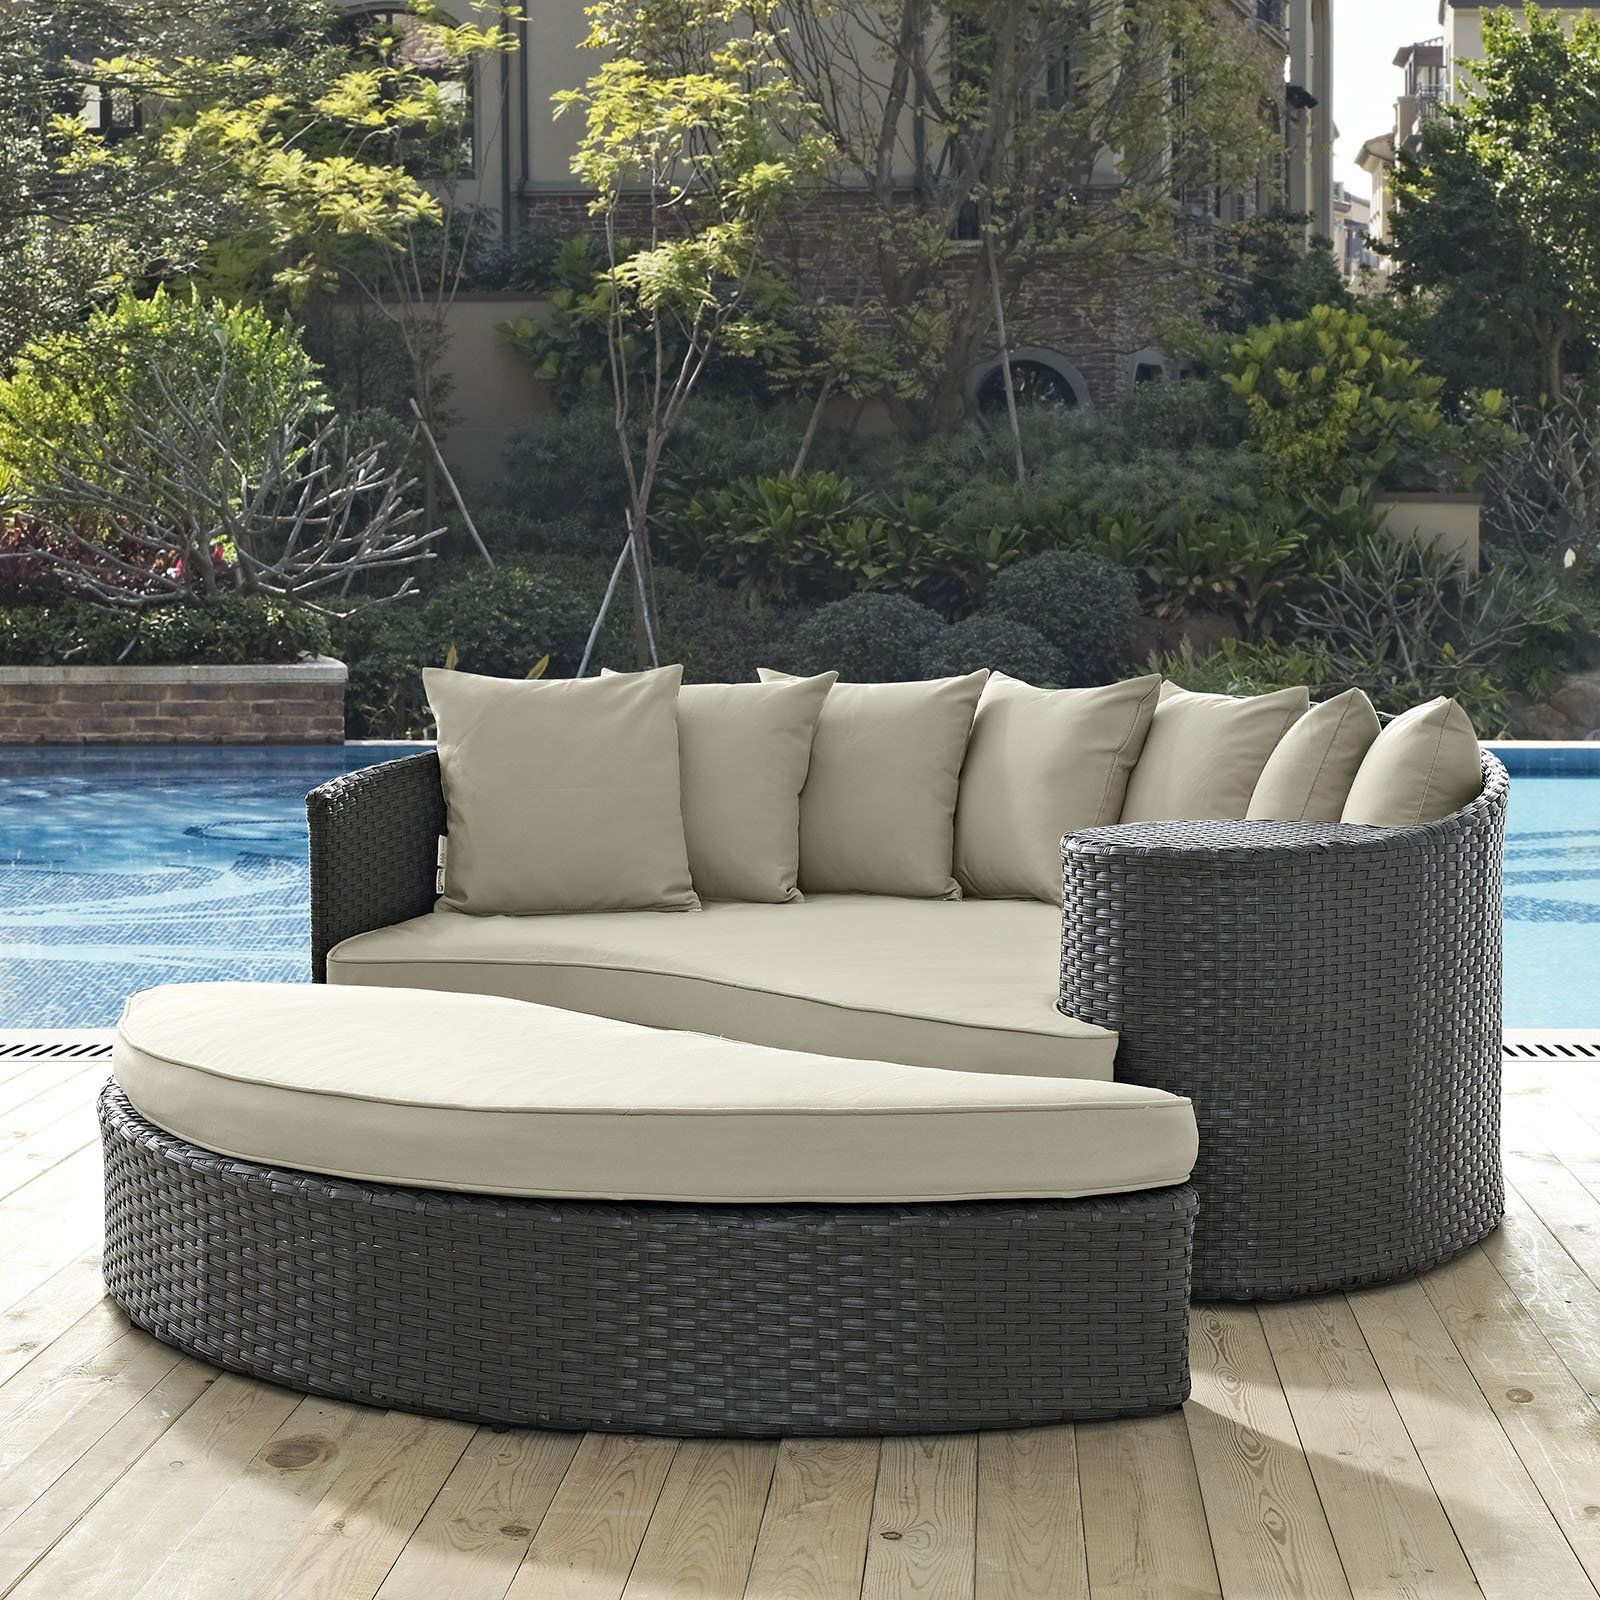 Modway Sojourn Wicker 2 Piece Outdoor Daybed Set – Eei 1982 For Widely Used Keiran Patio Daybeds With Cushions (View 13 of 20)